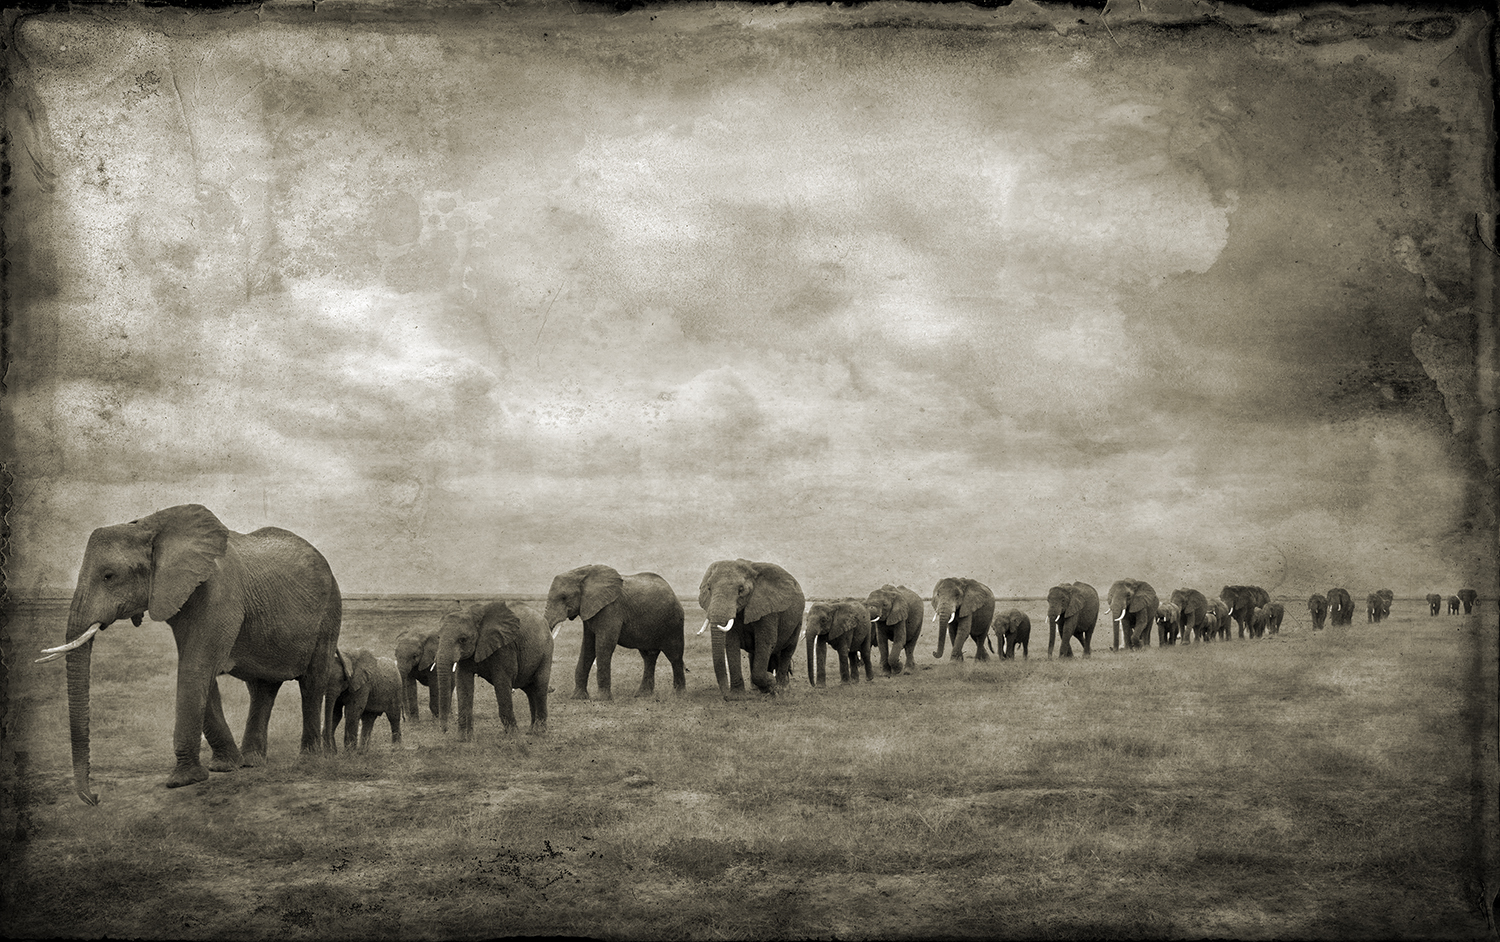 Line of Elephants Amboselli copy.jpg